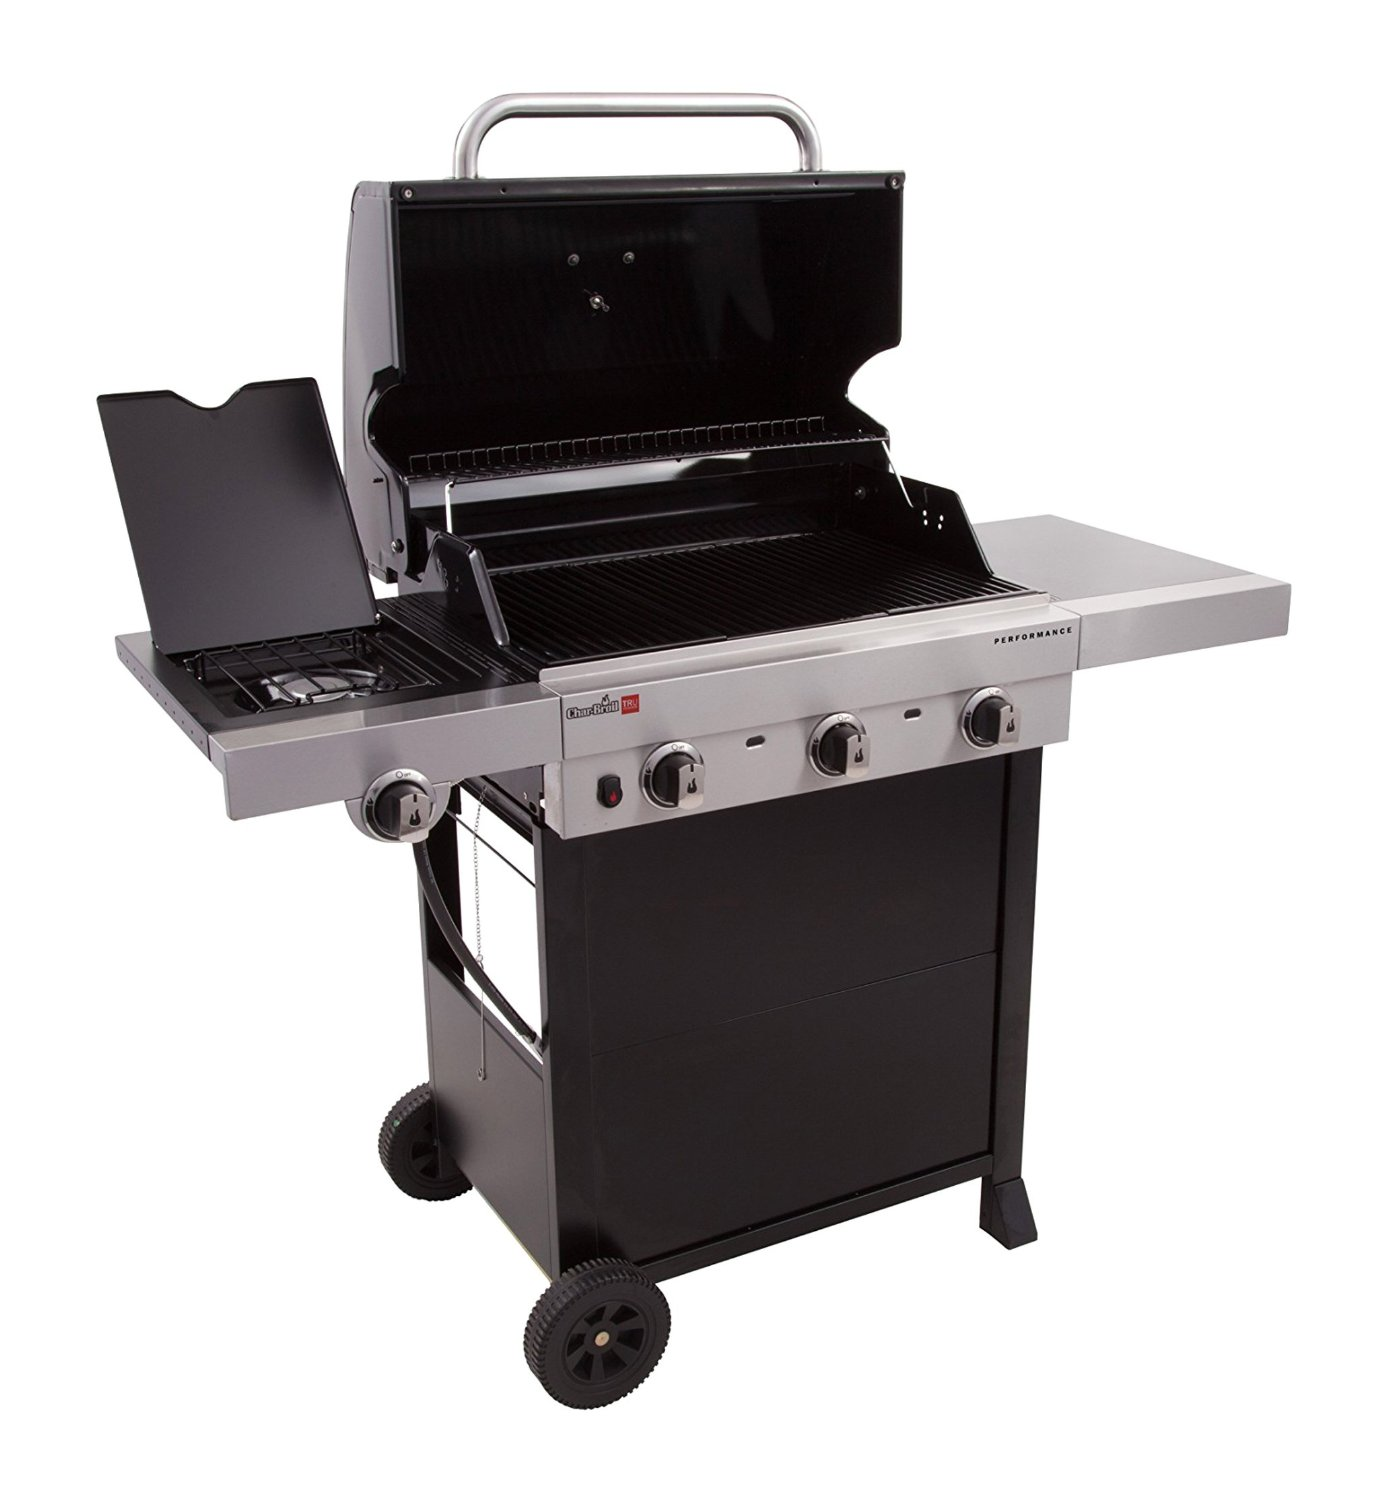 grills u0026 outdoor cooking walmart com